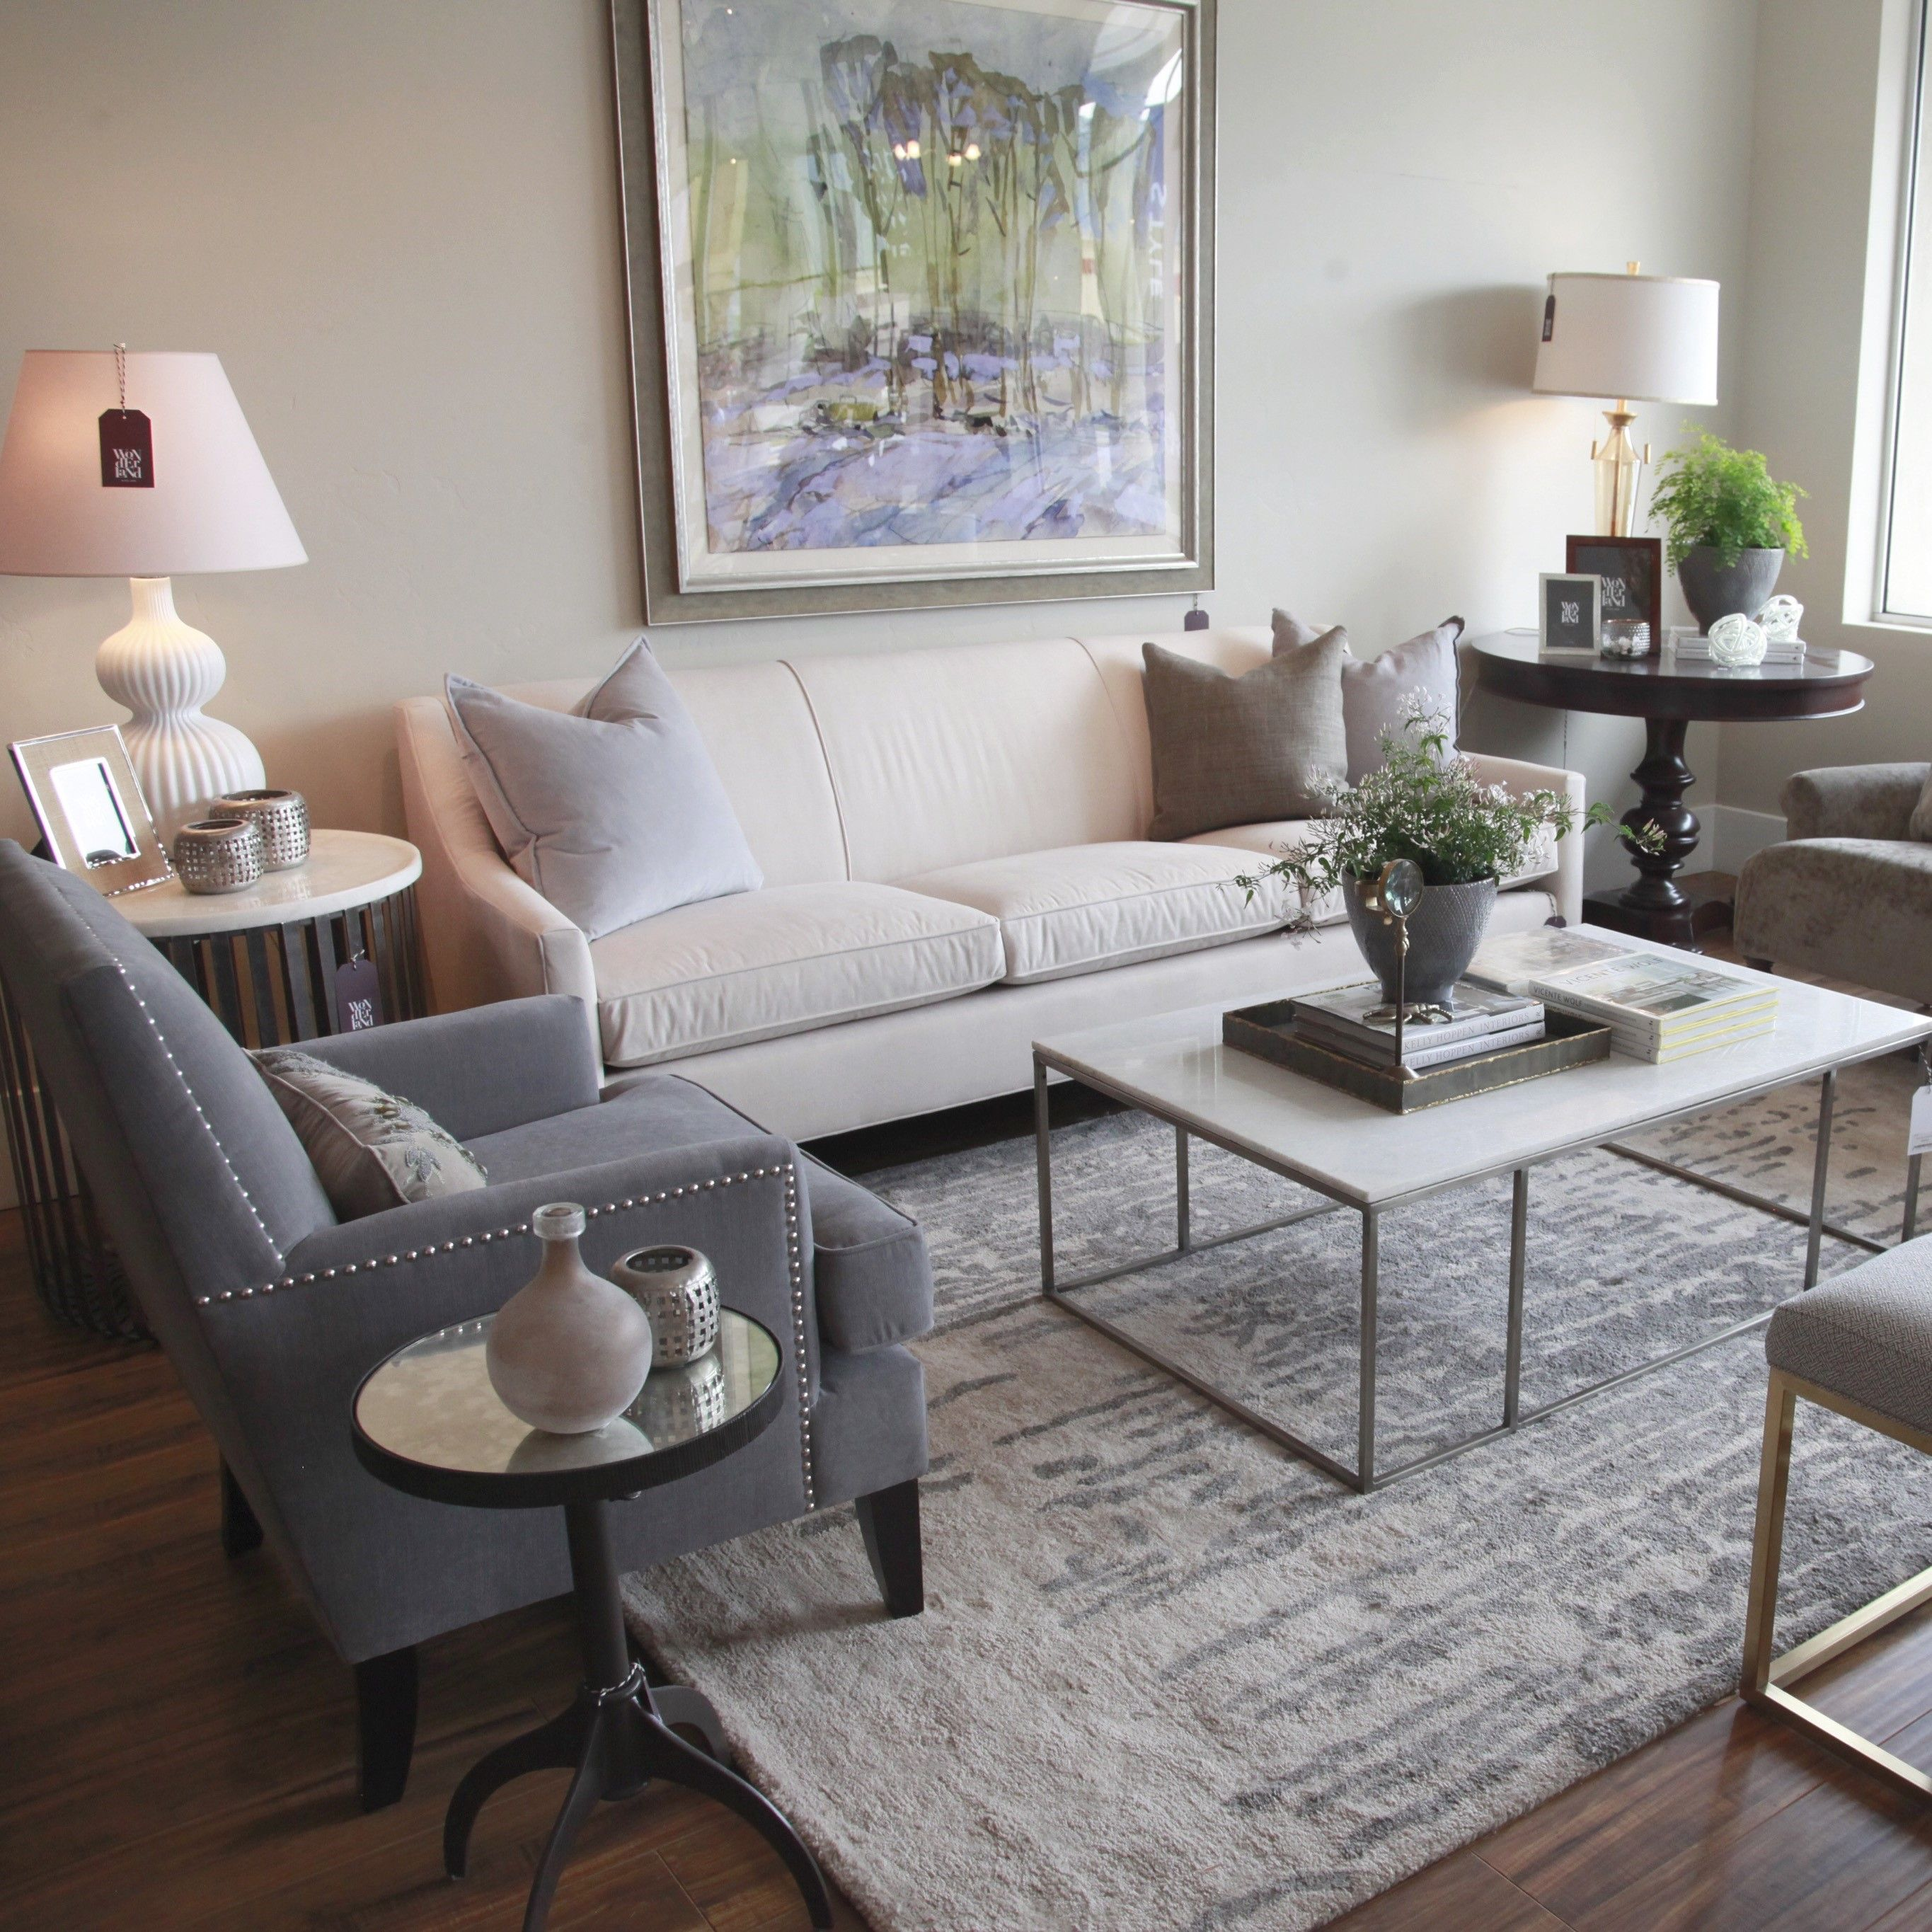 Chic Elegance Of Neutral Colors For The Living Room 10 Amazing Examples: Wonderland - Stylish & Afforable